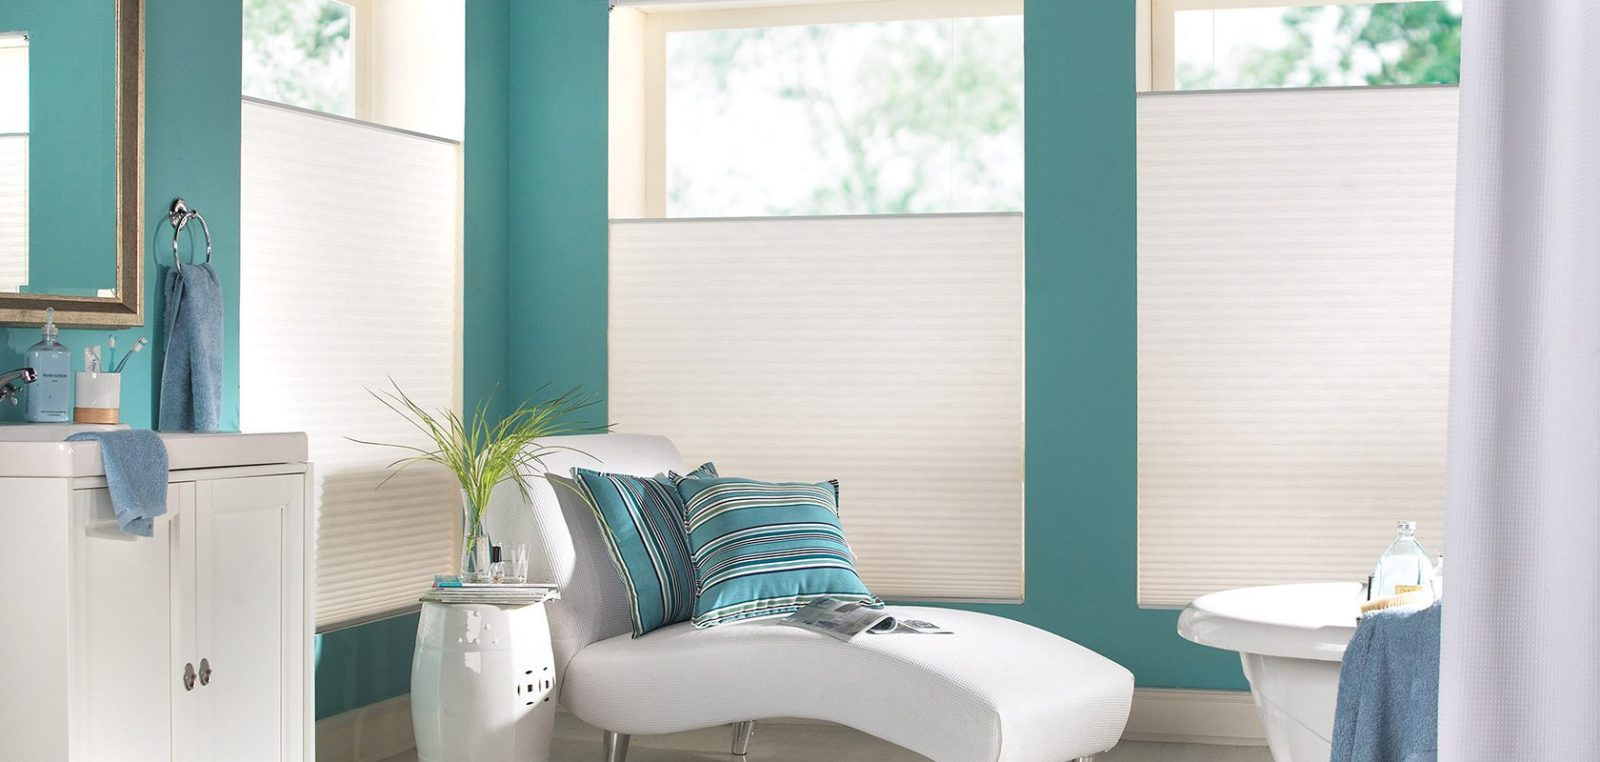 3 Best types of Blinds and Shades for Bathrooms